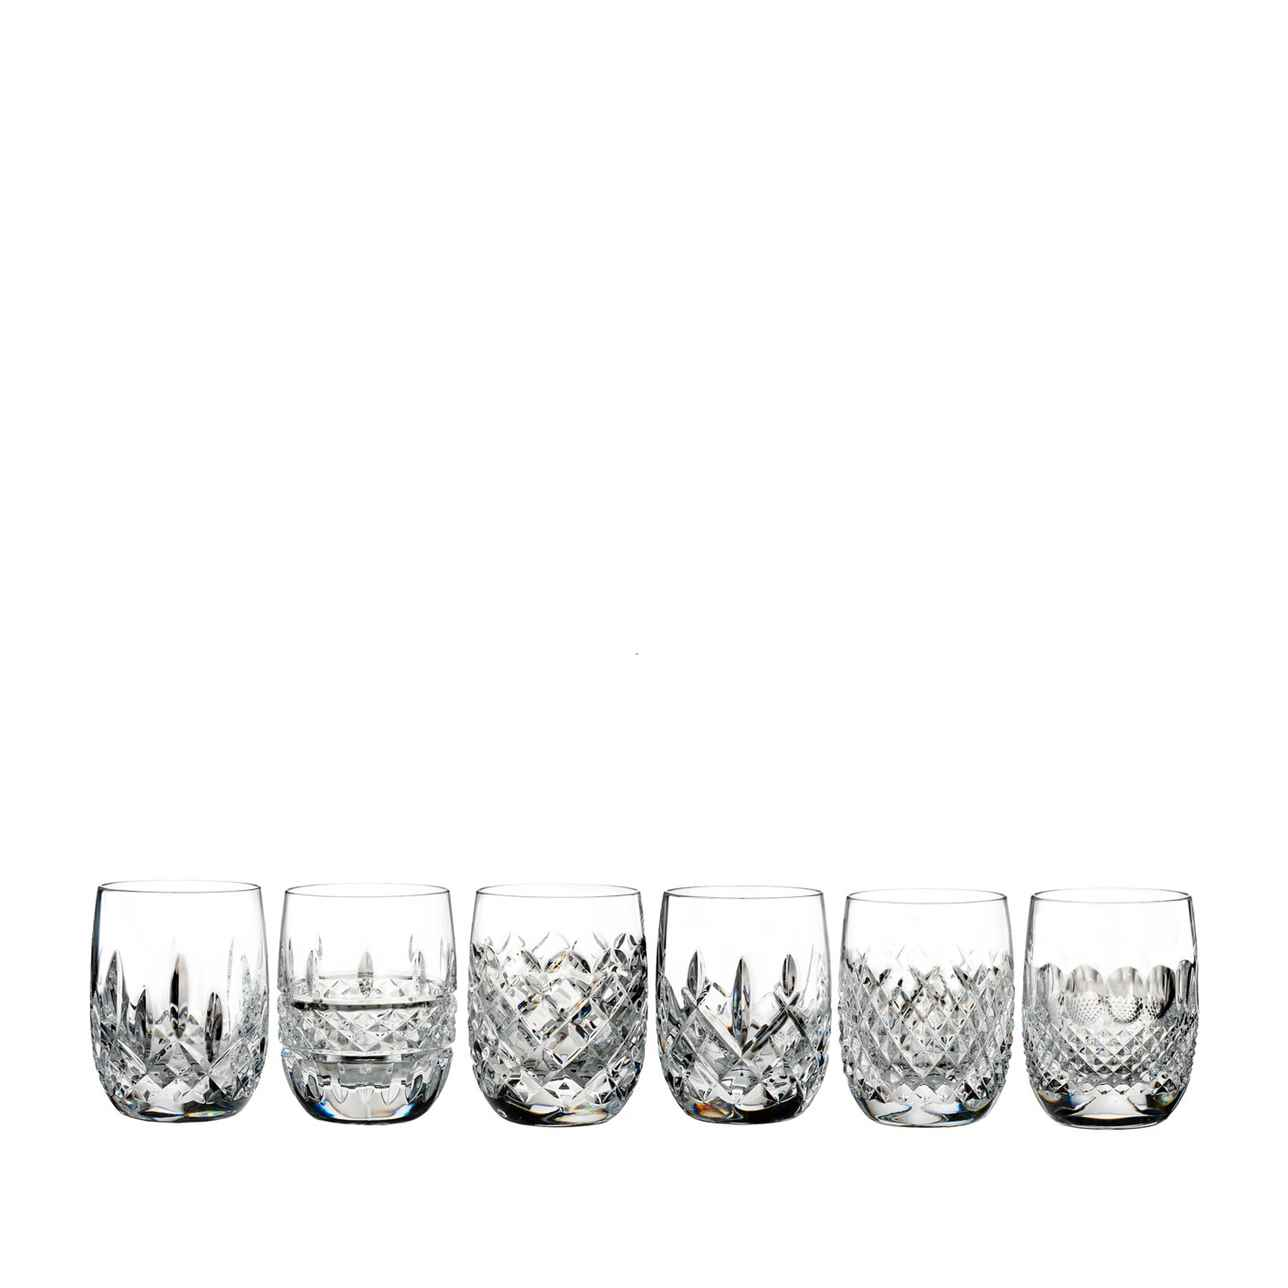 Lismore Connoisseur Heritage Rounded Tumbler, Set of 6